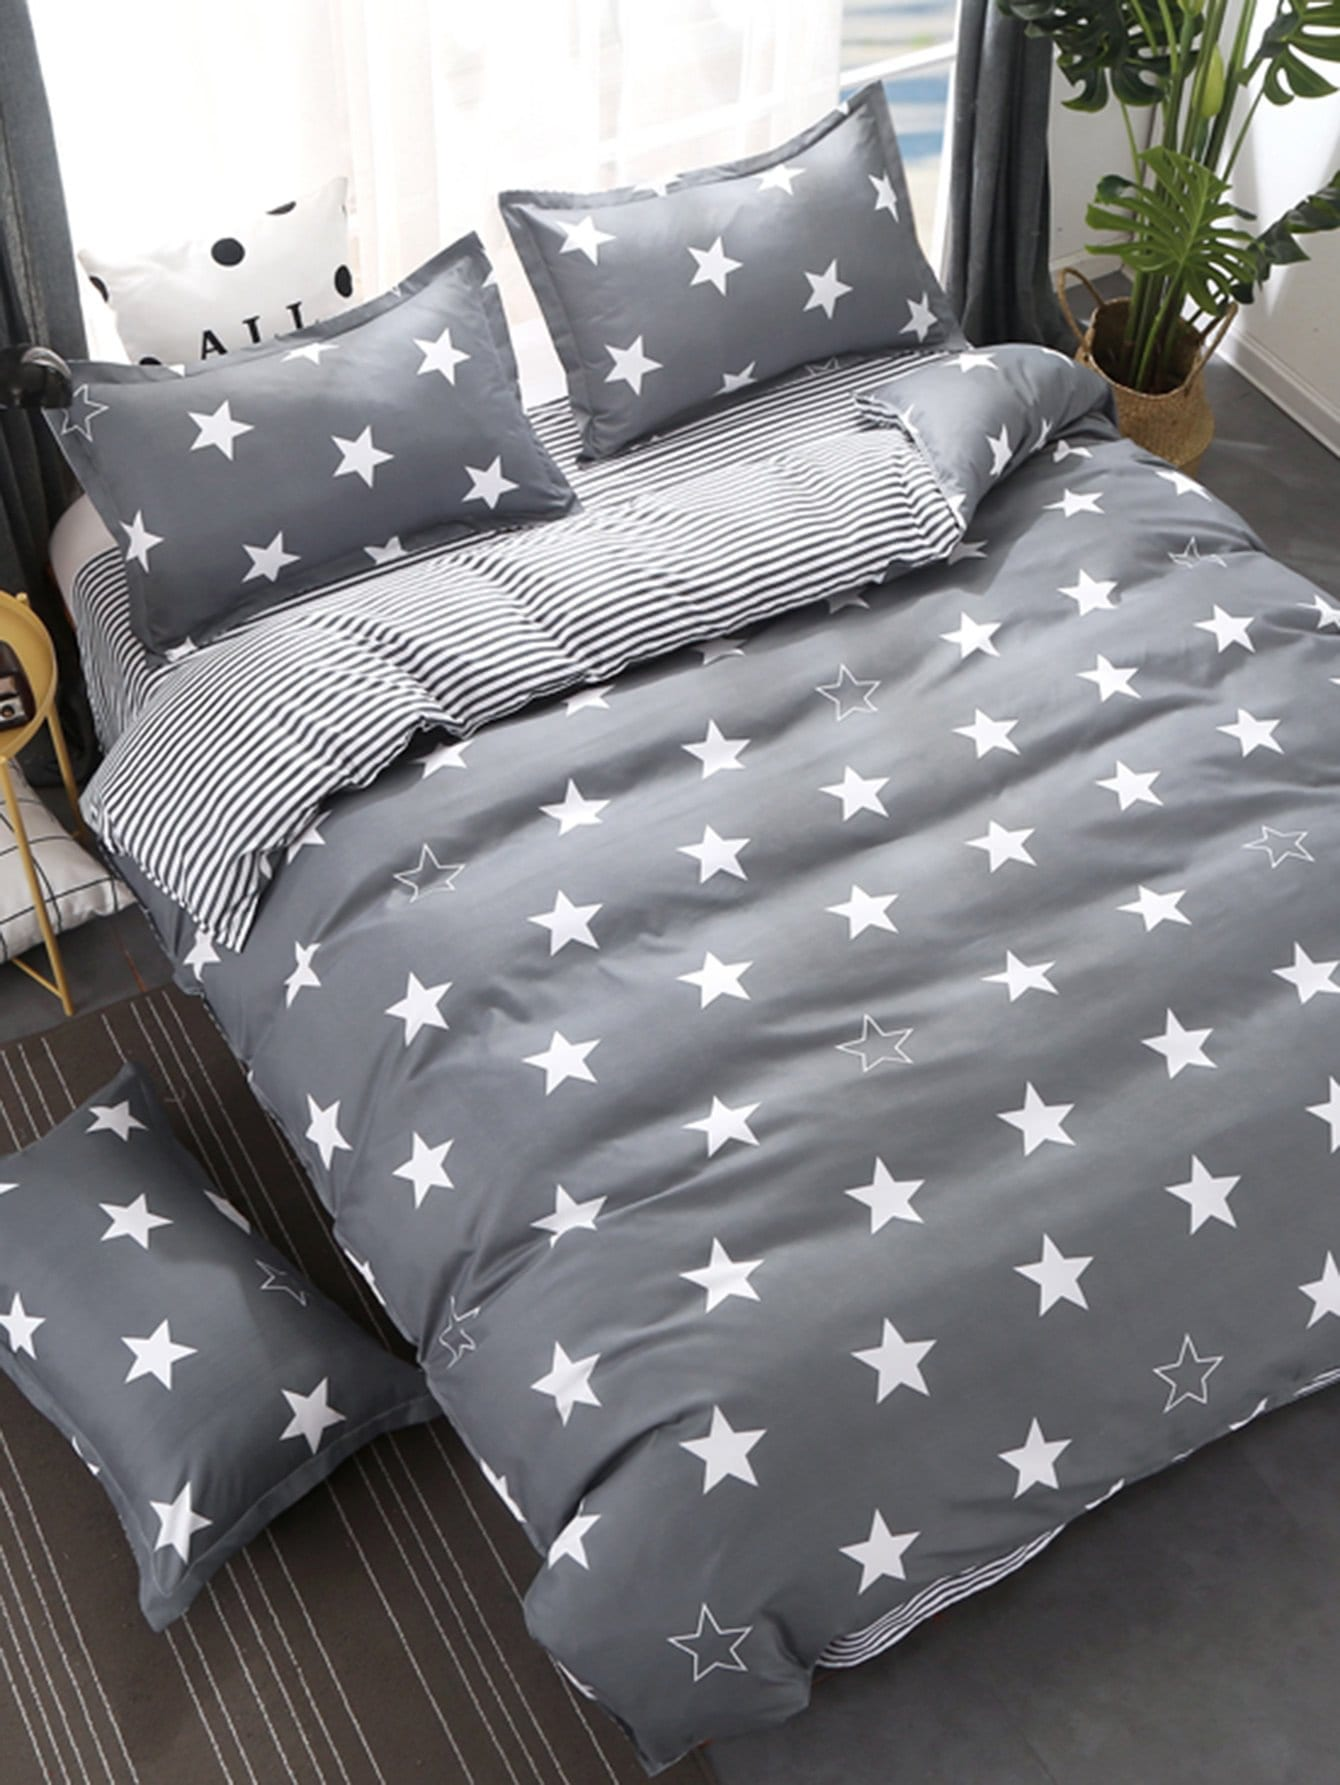 Stars & Striped Print Bedding Set vertical striped bedding set